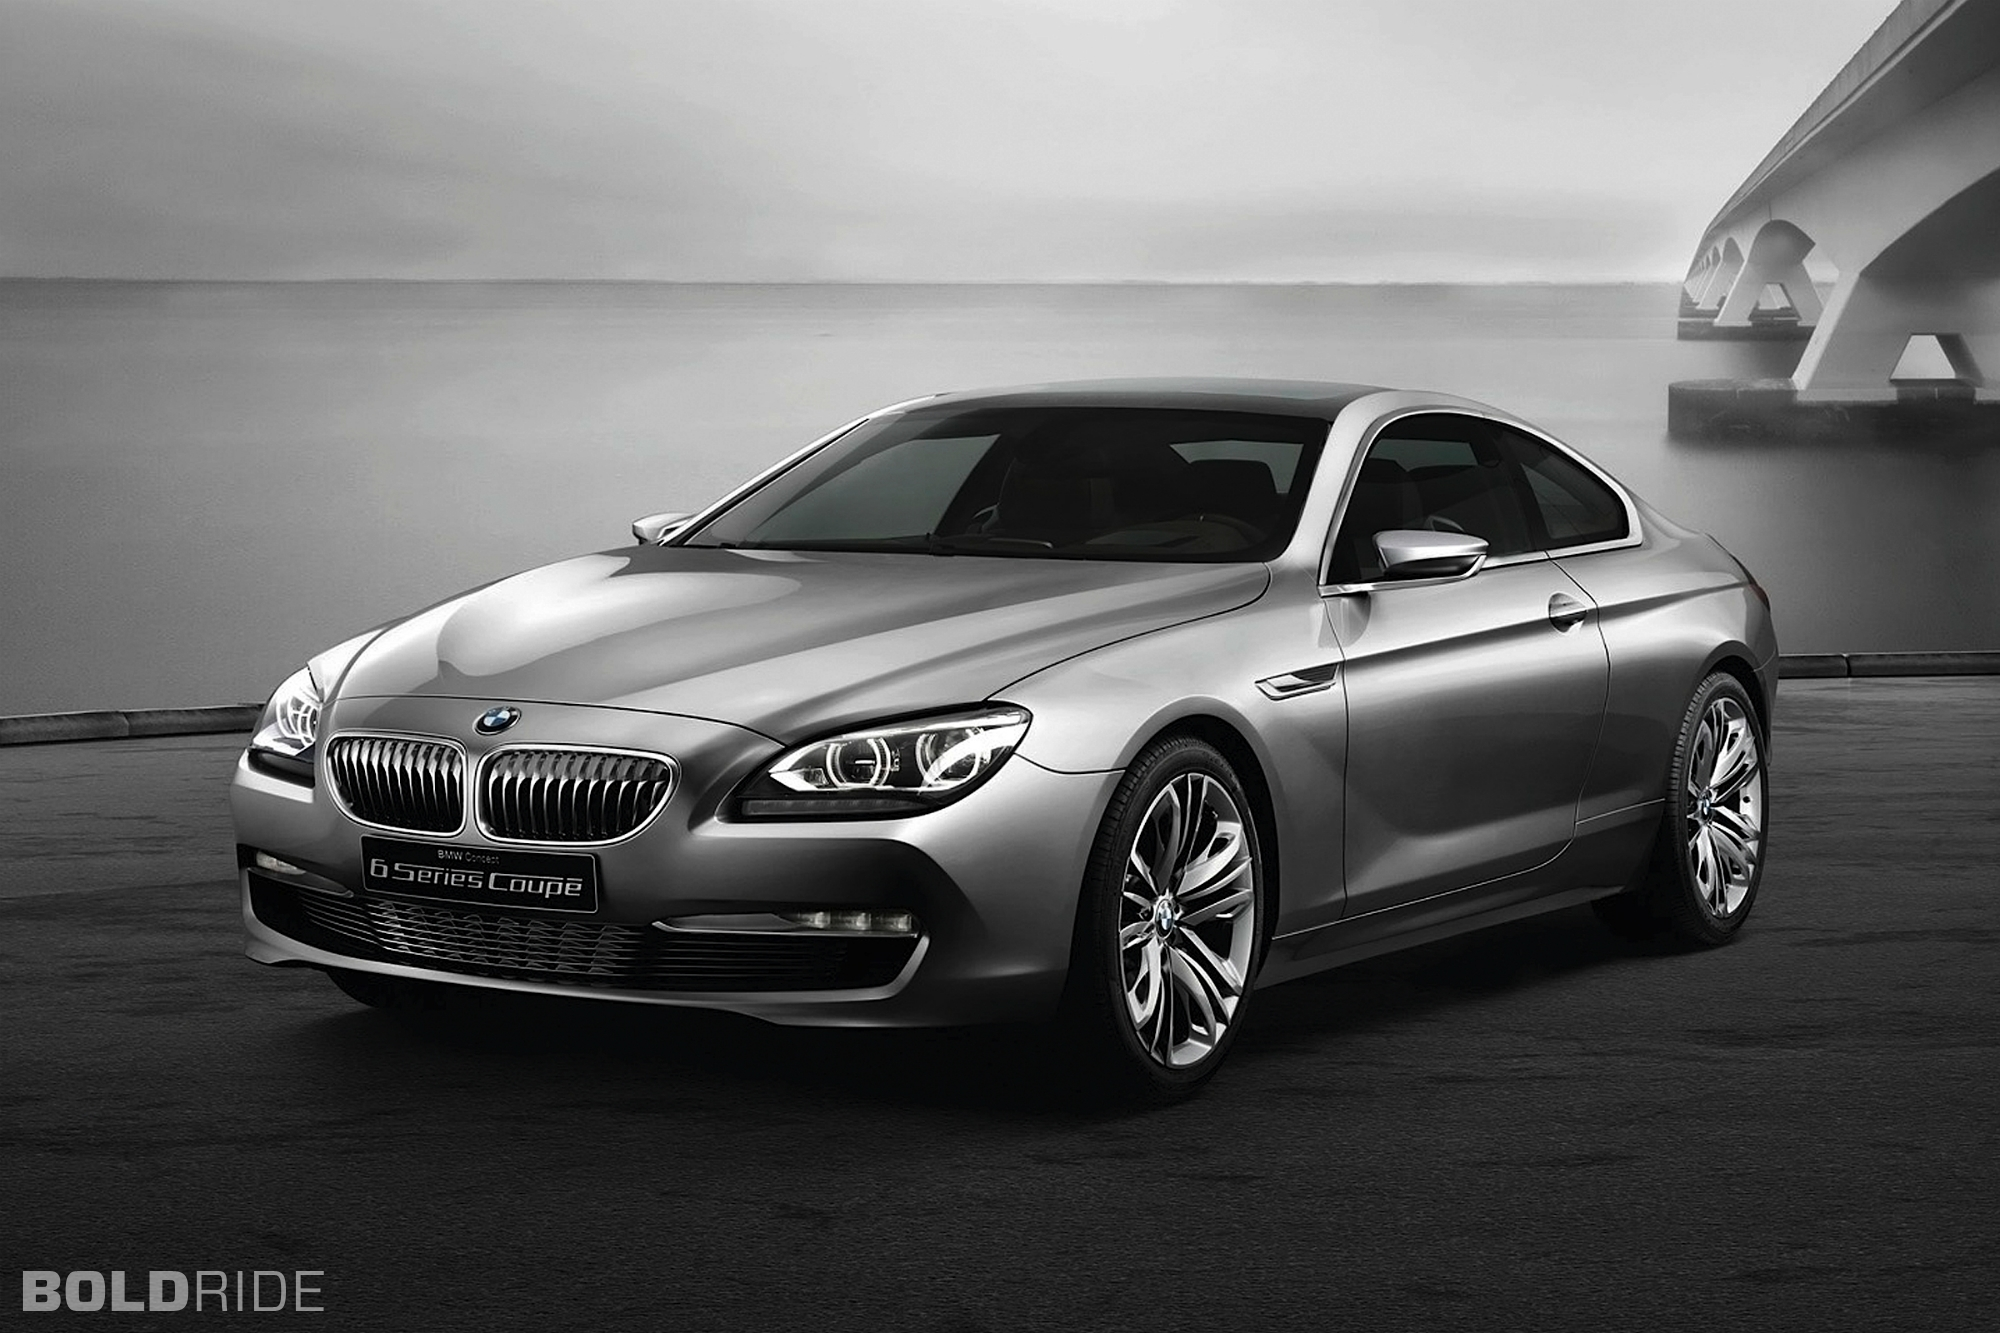 2010 BMW 6 Series Coupe Concept photo - 3